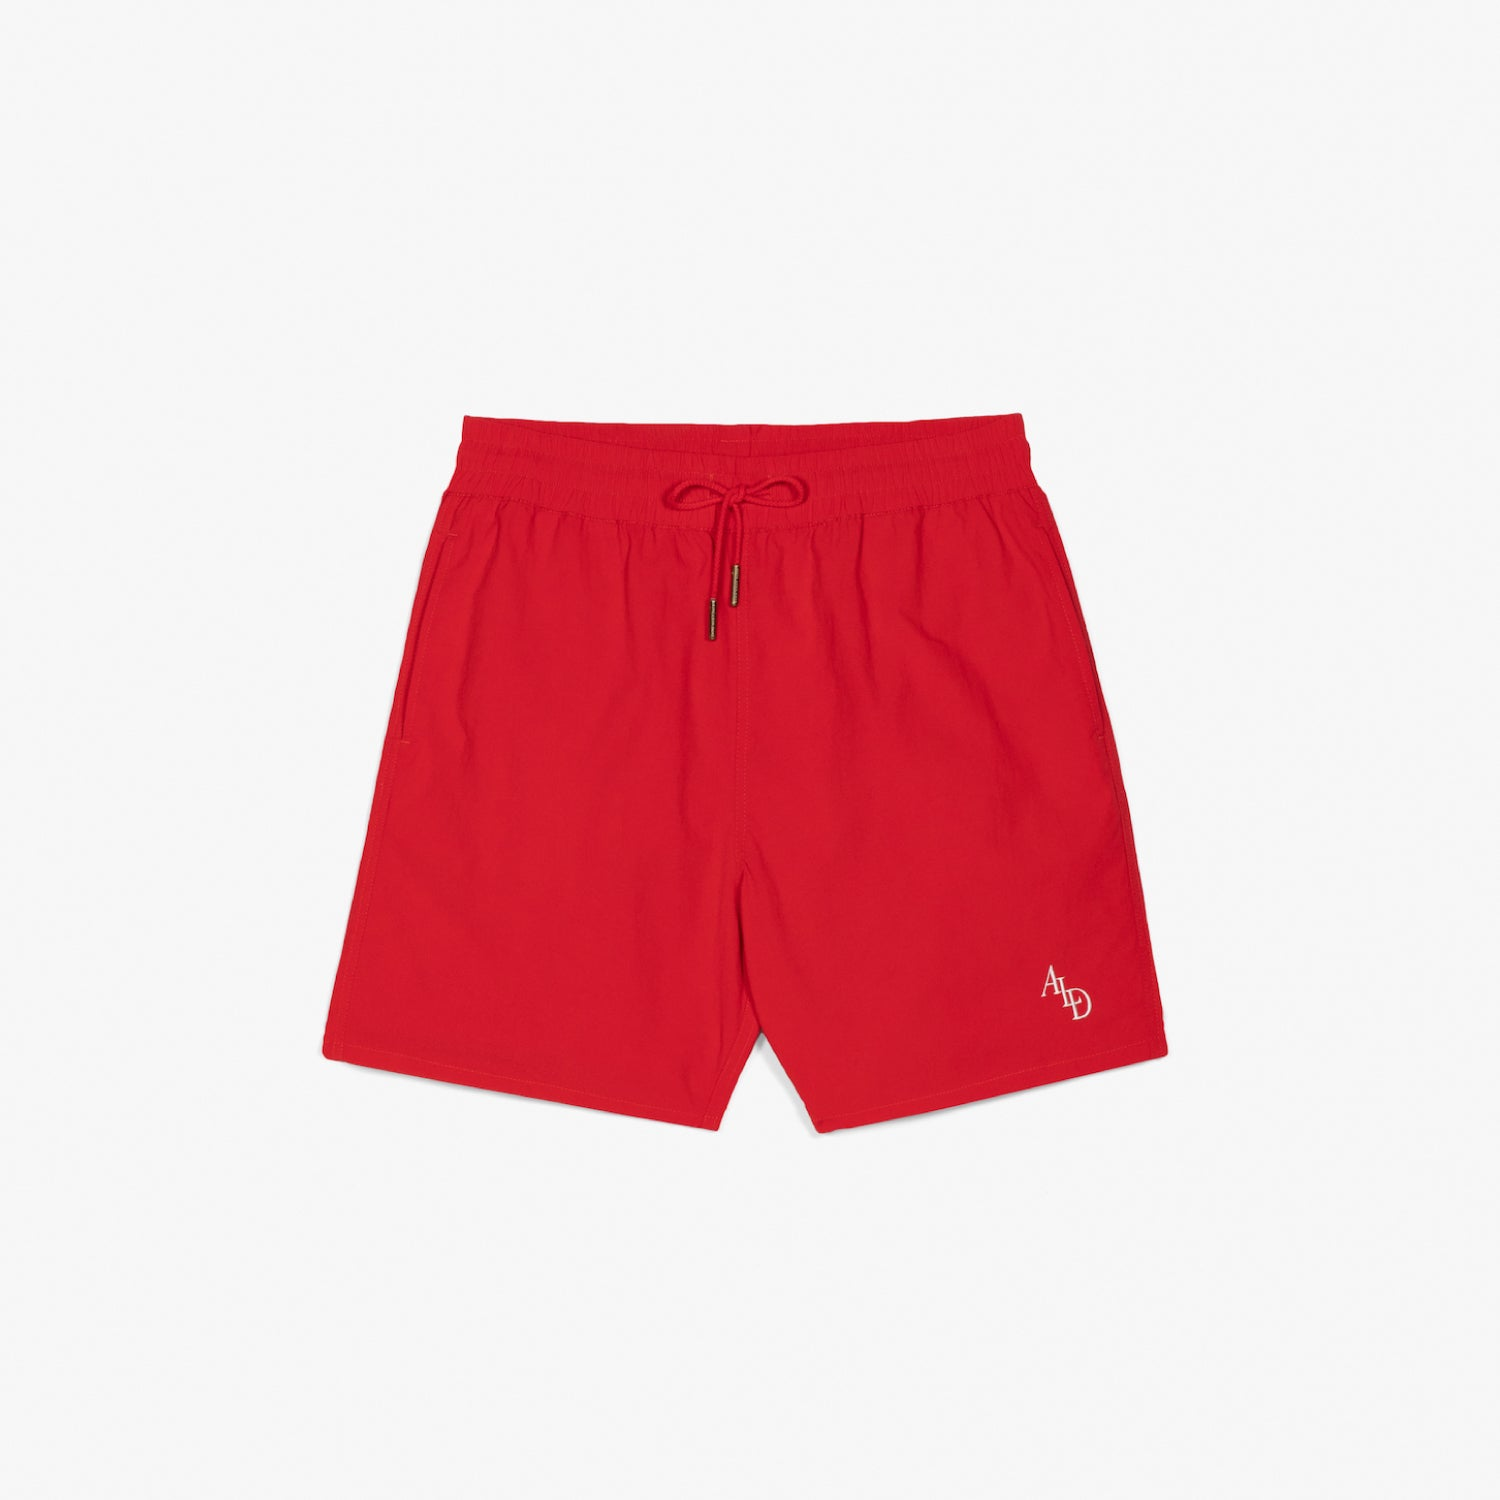 MONOGRAM NYLON SHORTS - RED